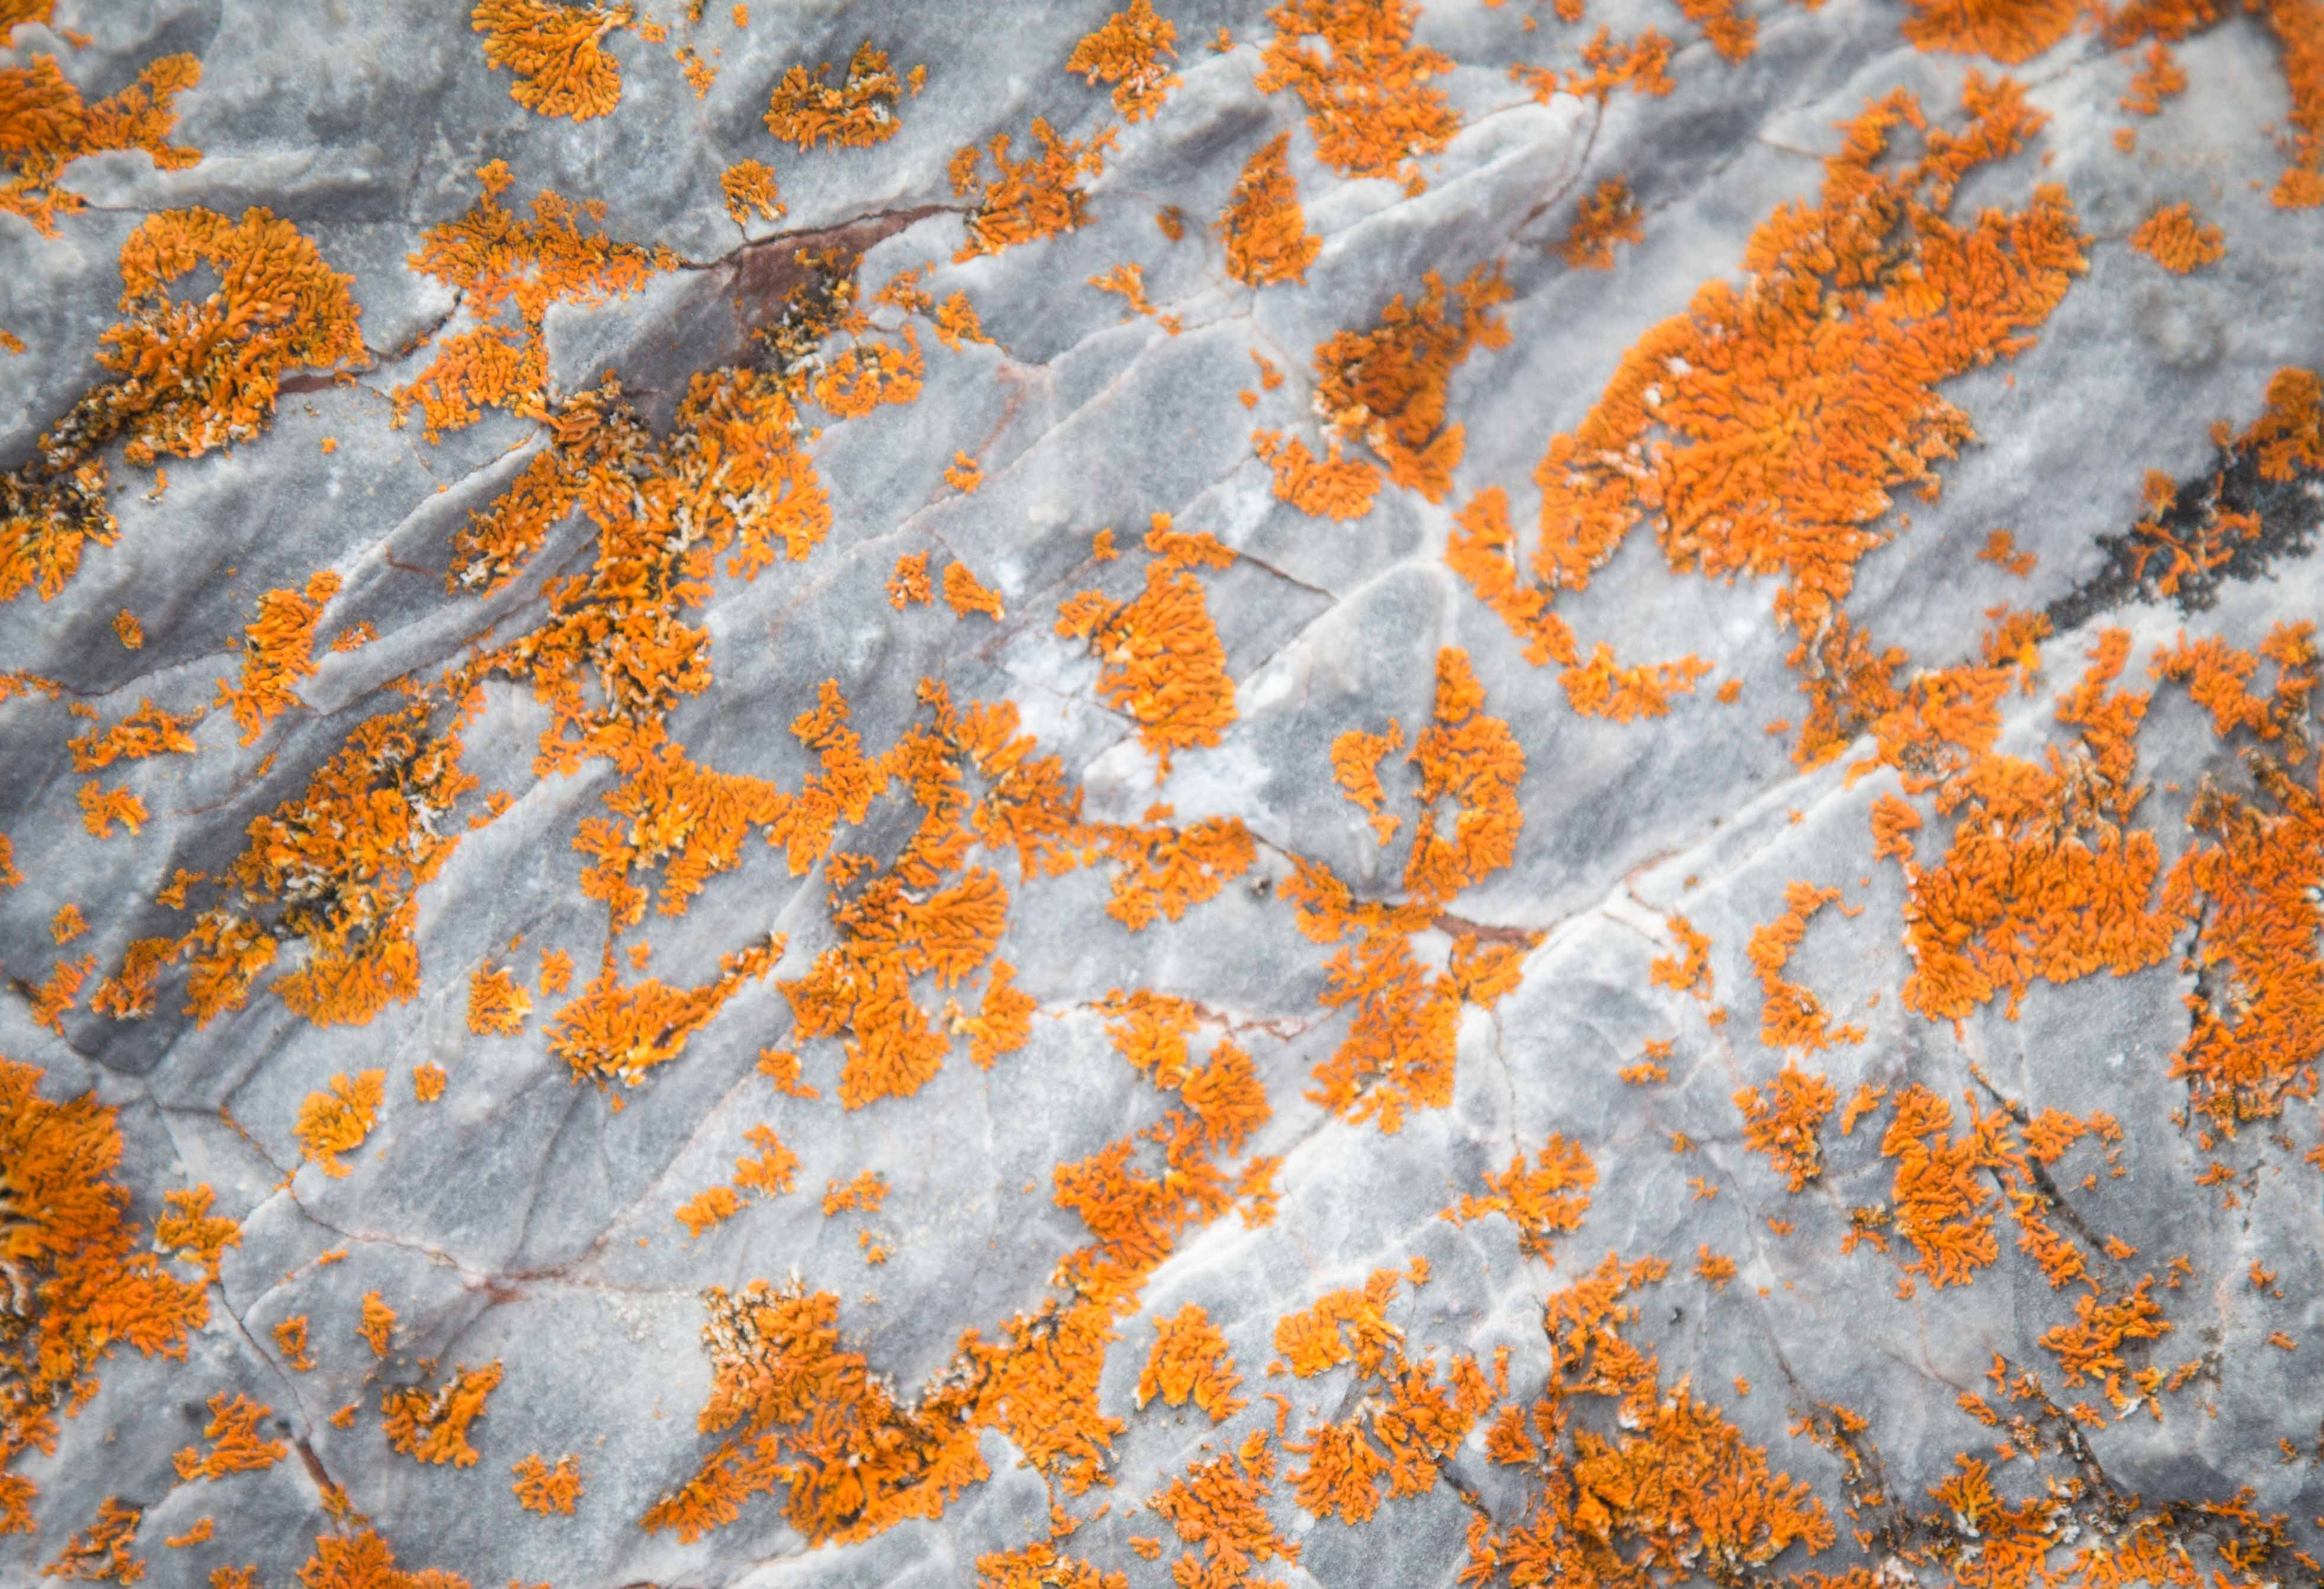 The persevering lichen has adapted to the Arctic tundra, thriving without any soil.